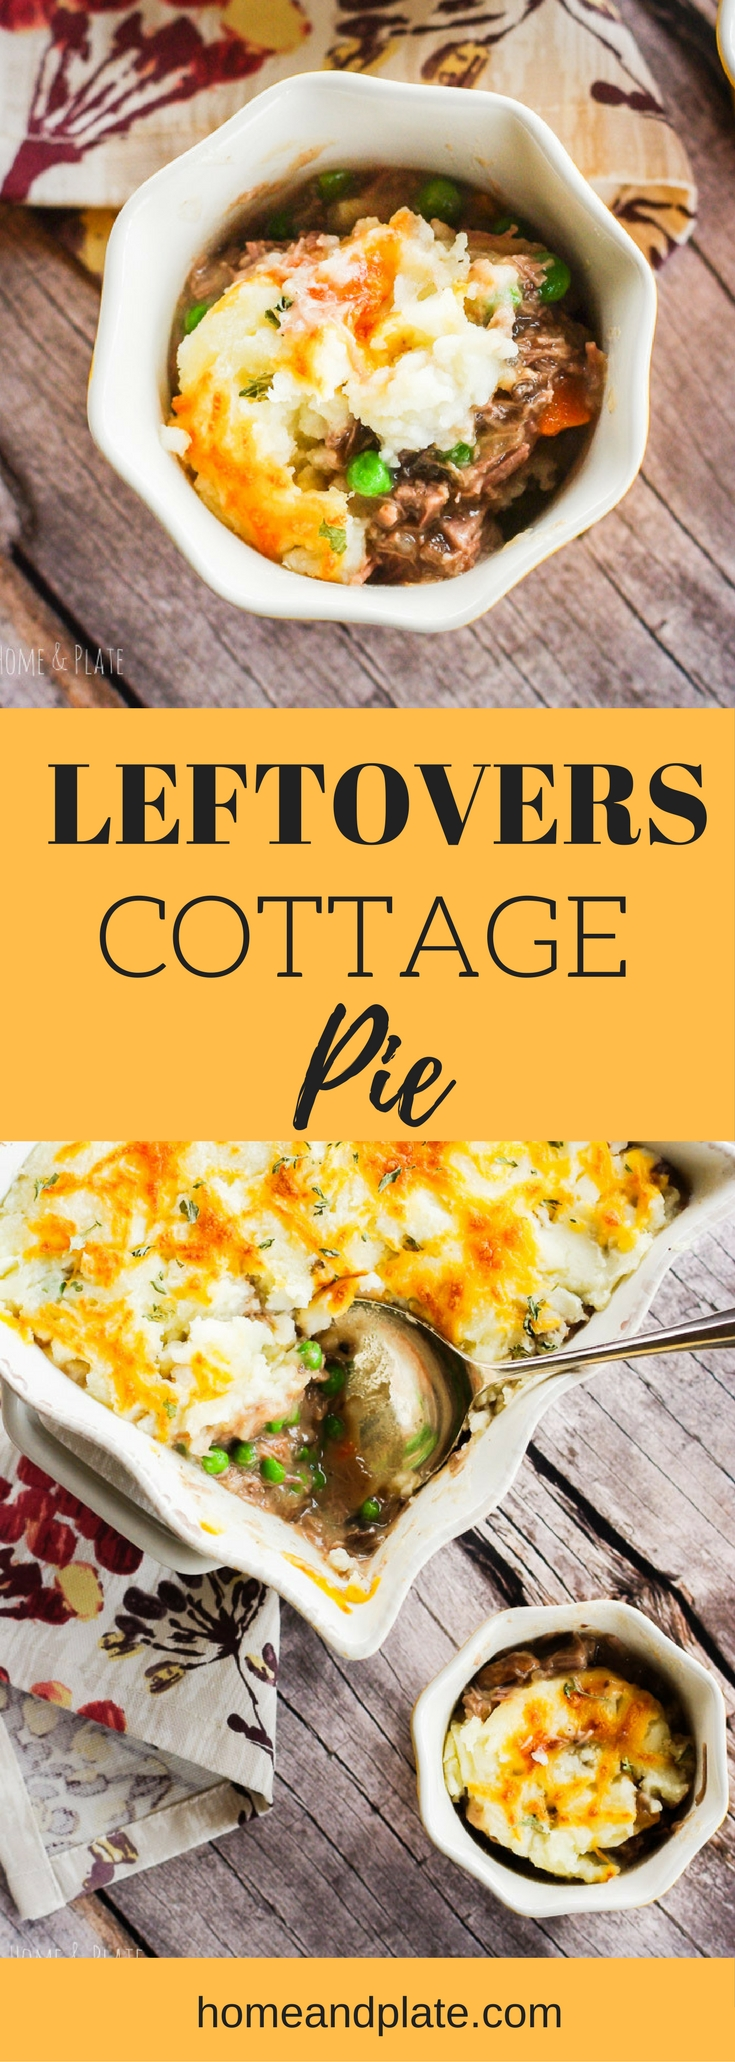 Leftovers Cottage Pie | www.homeandplate.com | Turn last night's leftovers into a classic cottage pie in 30 minutes. It's the ultimate comfort food this winter. #cottagpie #shepardspie #potpie